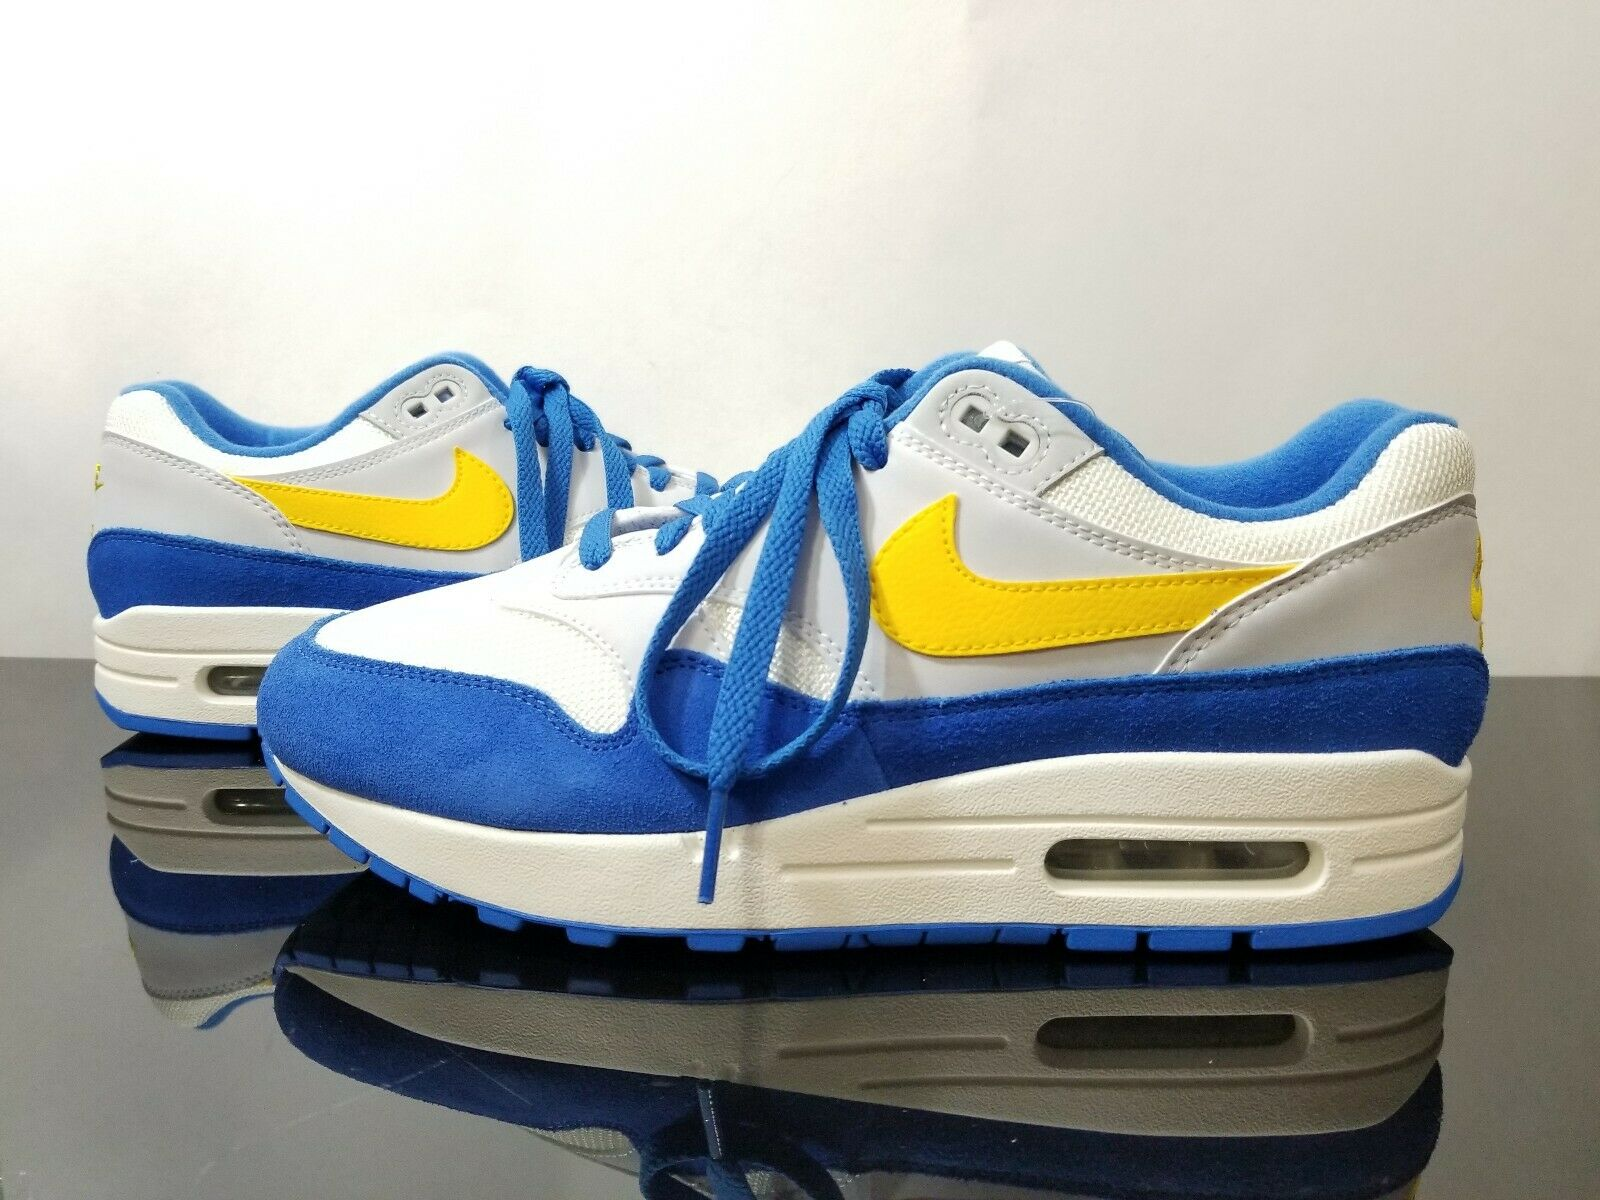 AH8145-108 MEN'S NIKE AIR MAX 1 SIGNAL blueE Sail yellow-Pure NEW  Size 7 Nuevo